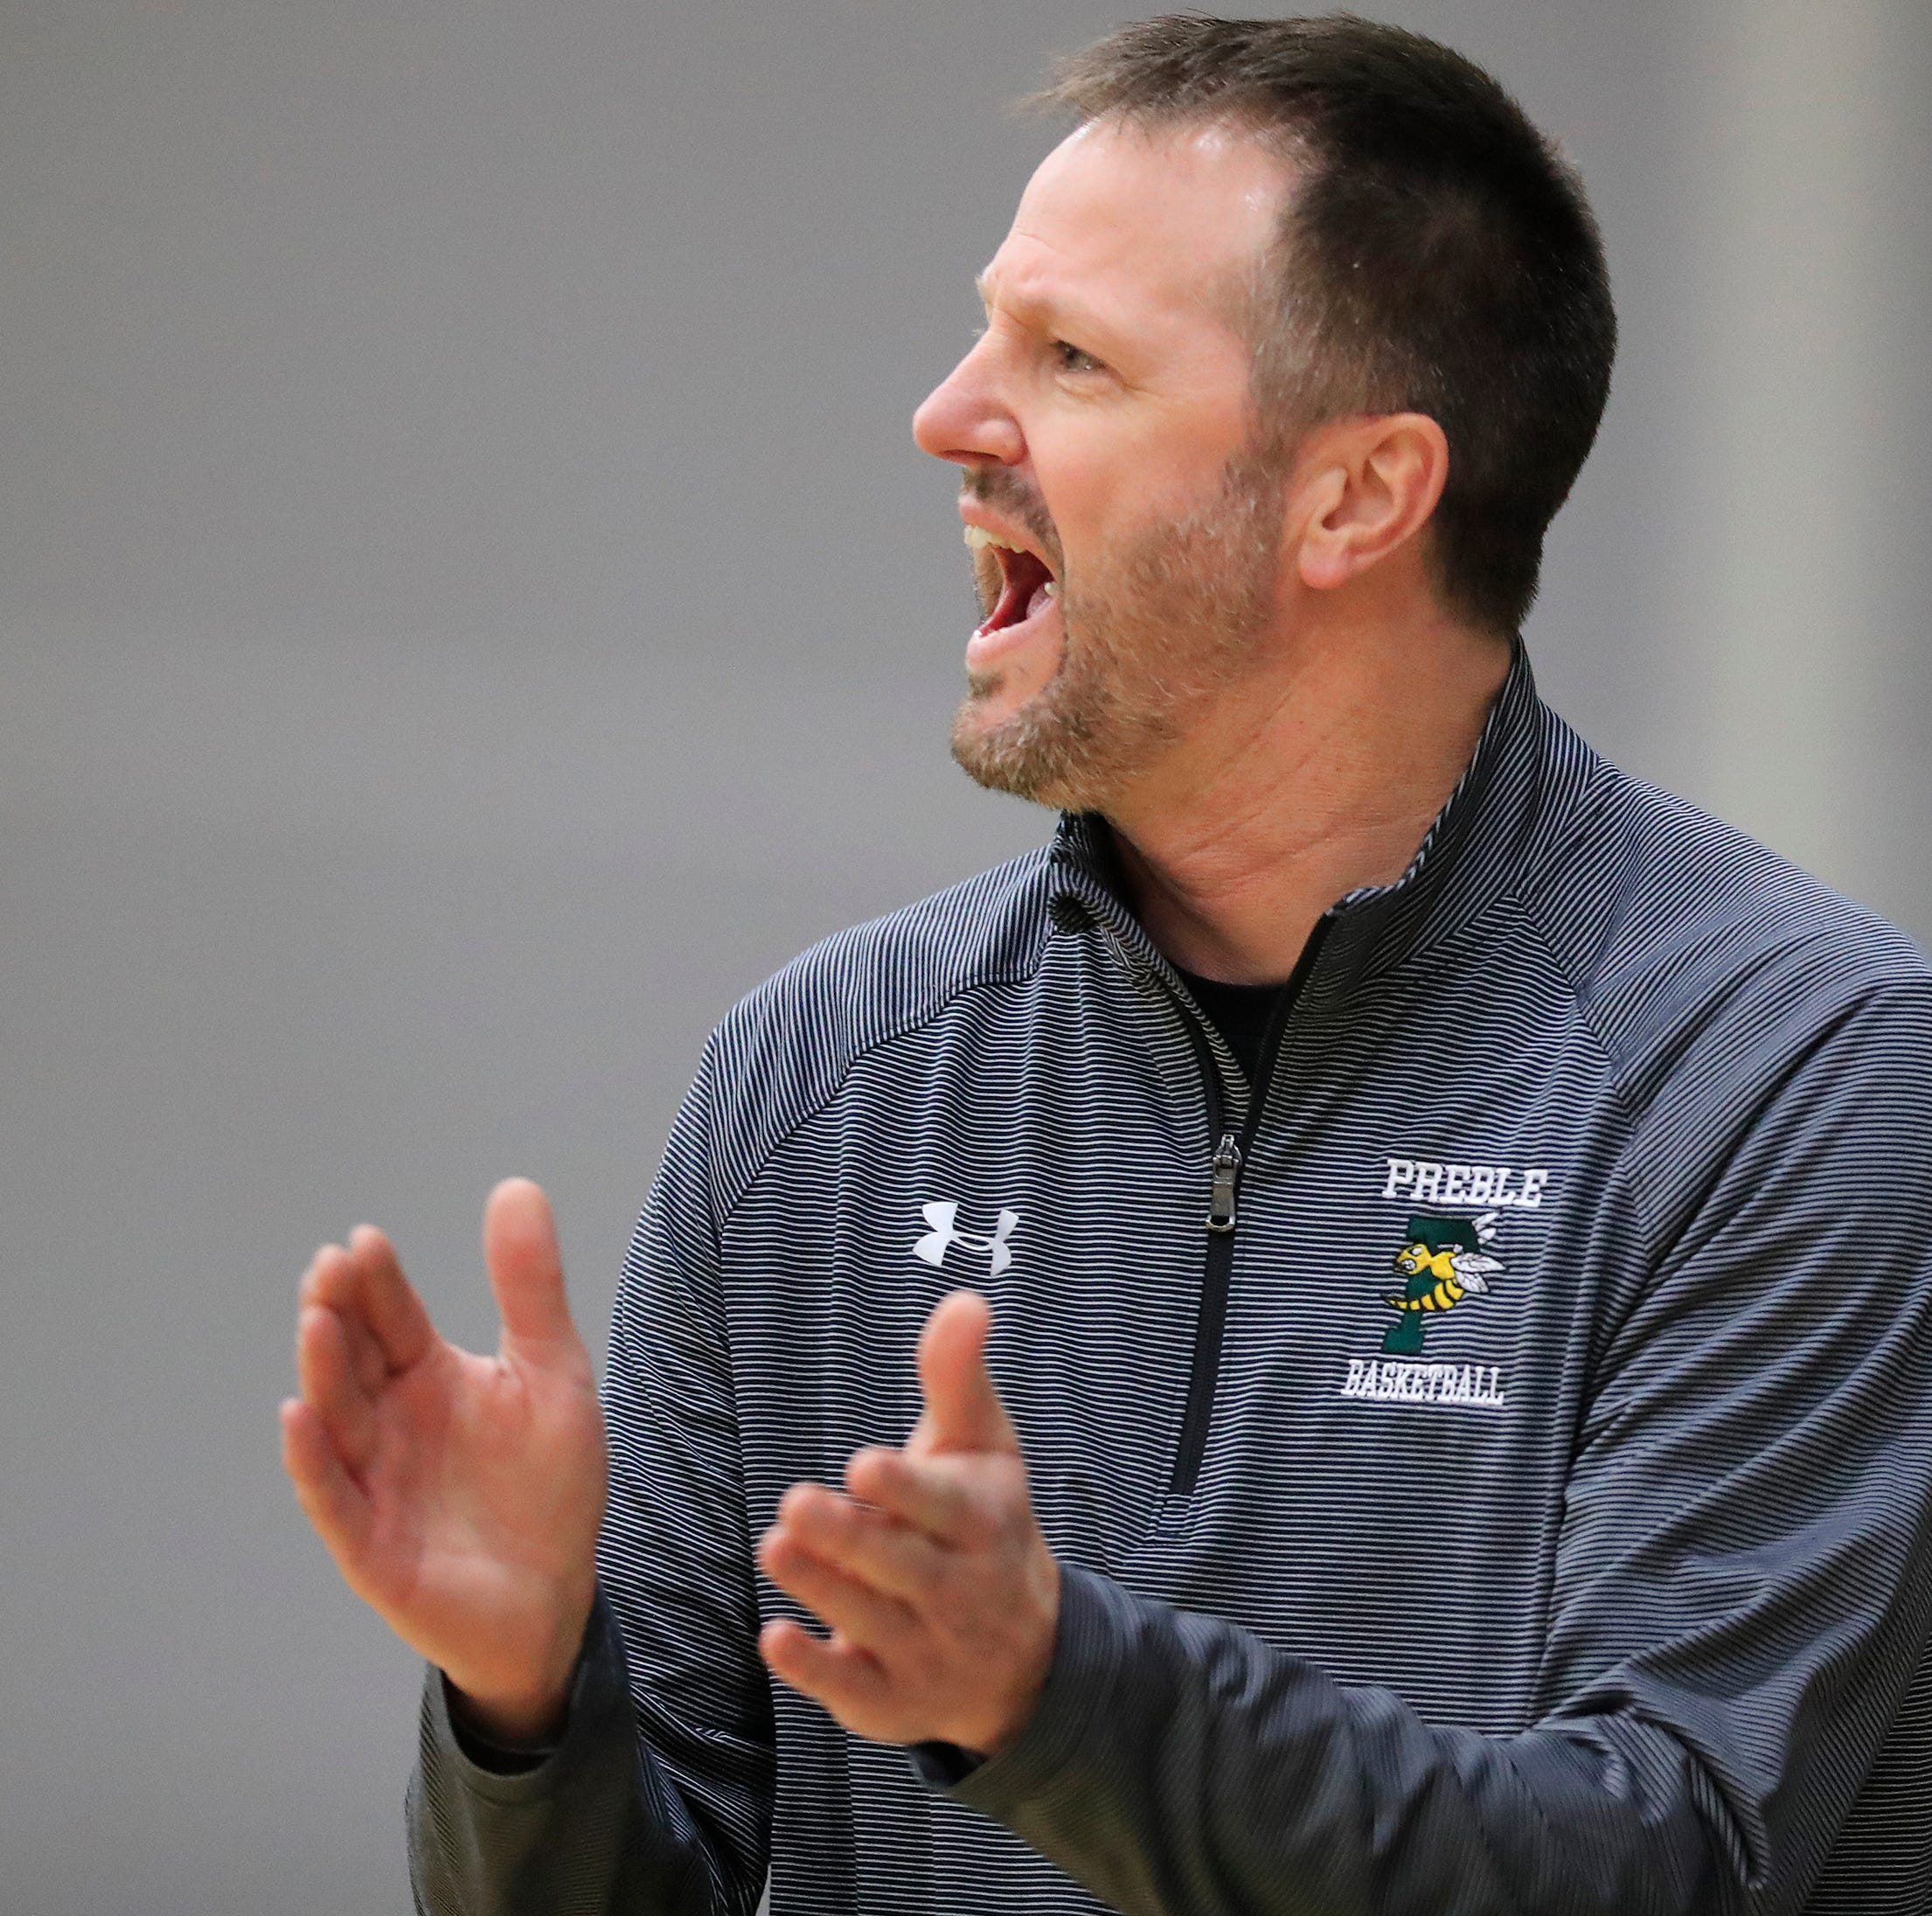 Preble girls basketball coach Jim Doell finds perspective after wife's cancer diagnosis